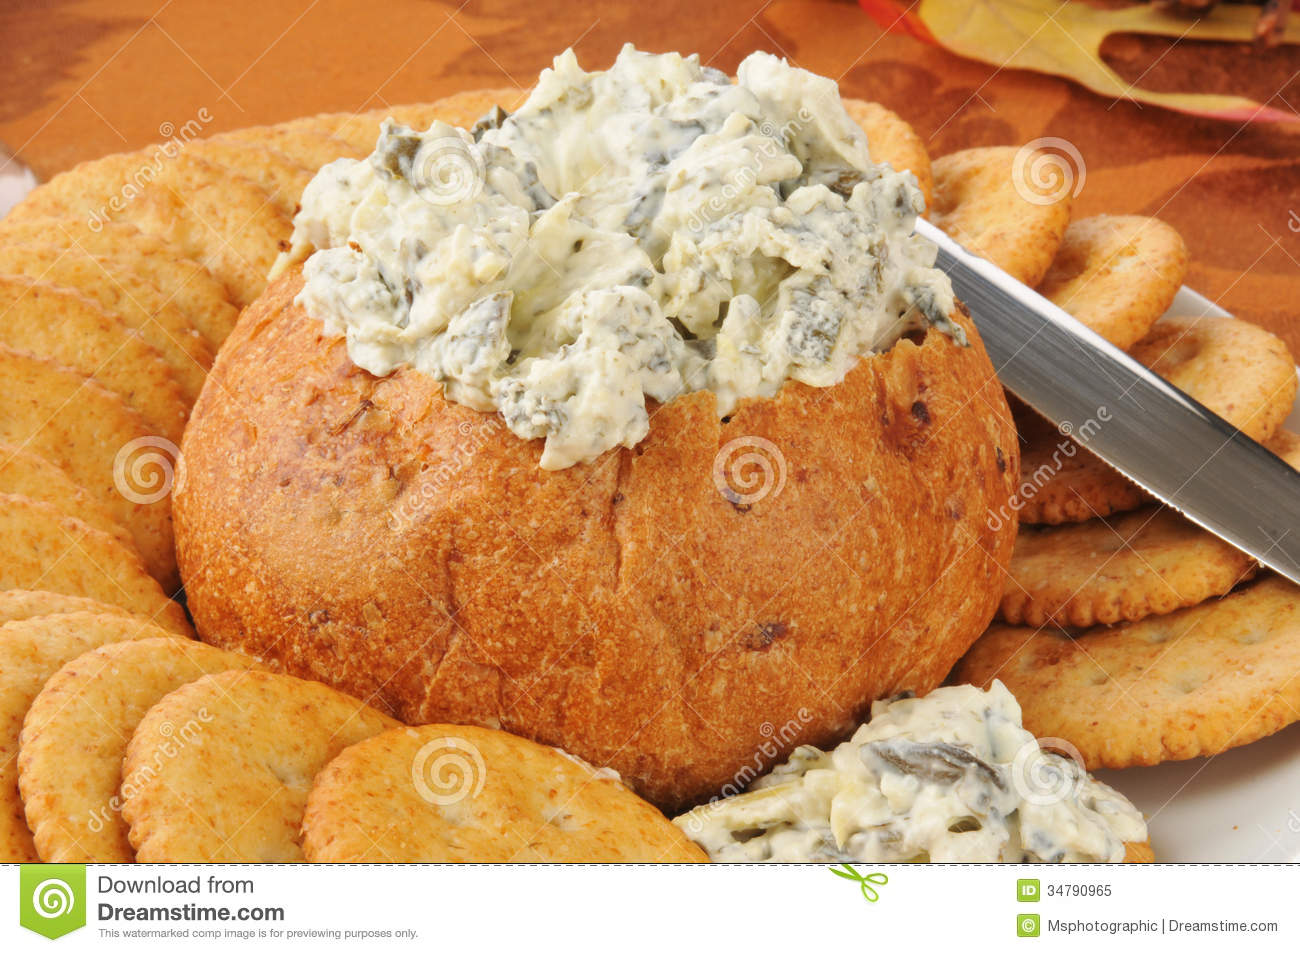 Spinach Artichoke Dip In A Bread Bowl Royalty Free Stock Photo   Image